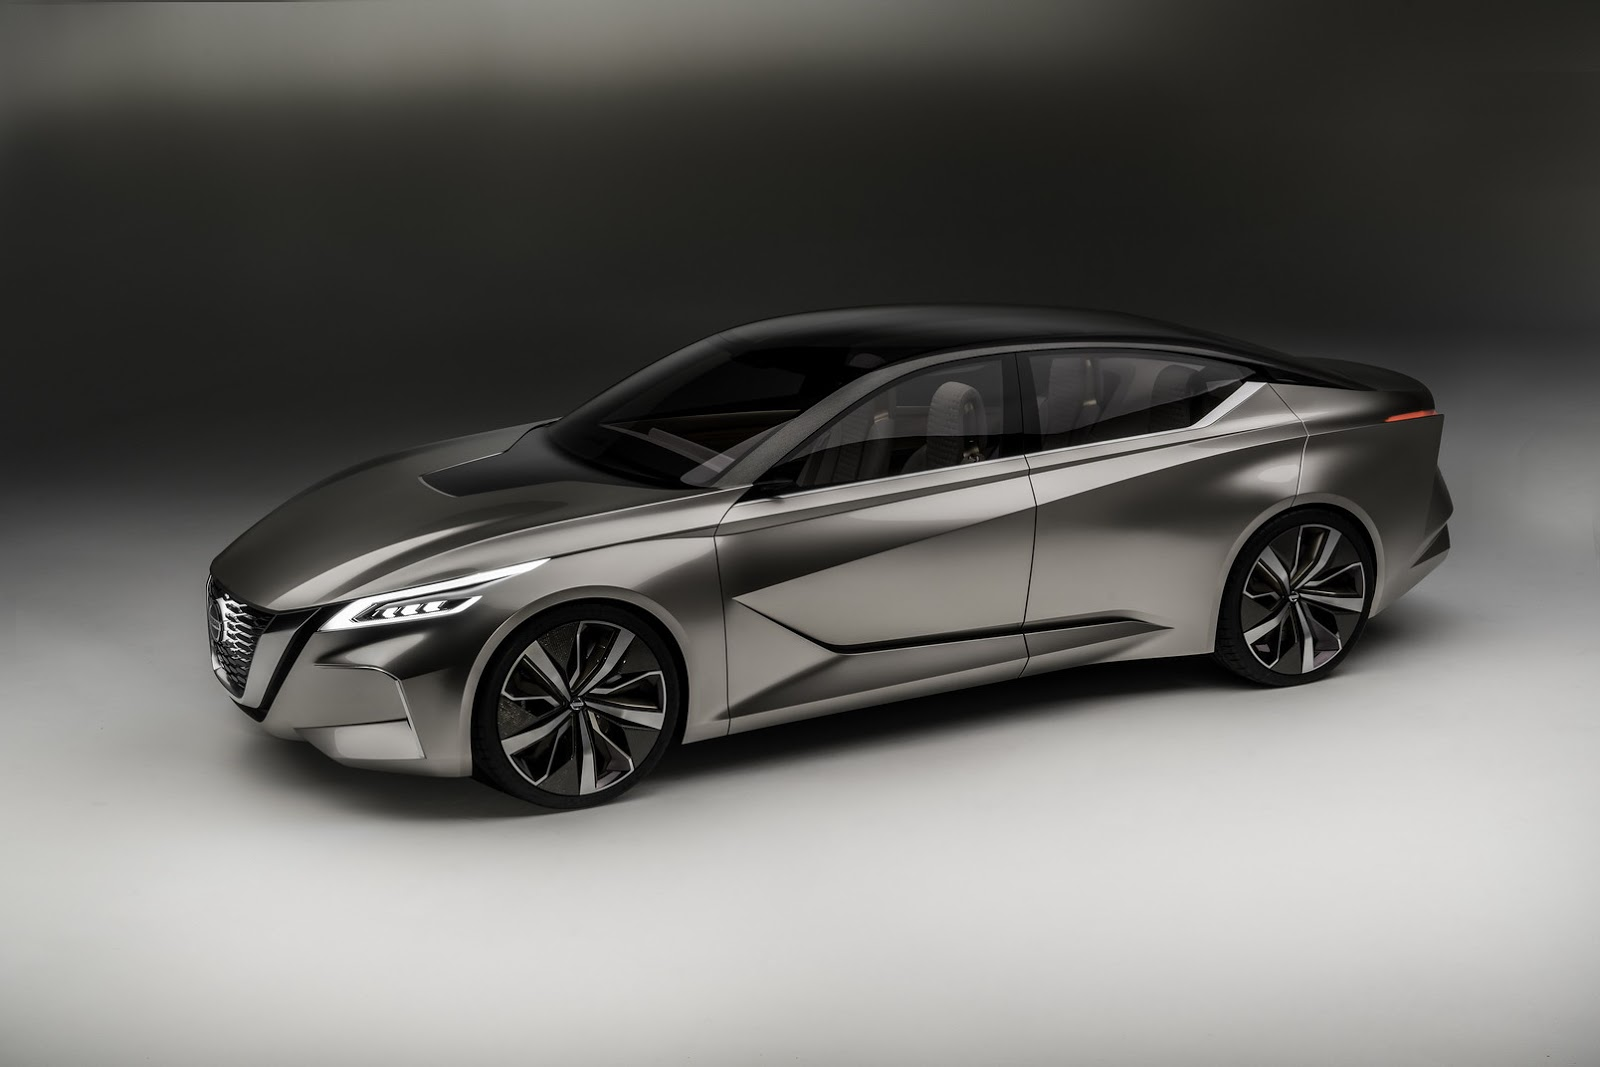 Nissan Vmotion 2.0 concept (25)